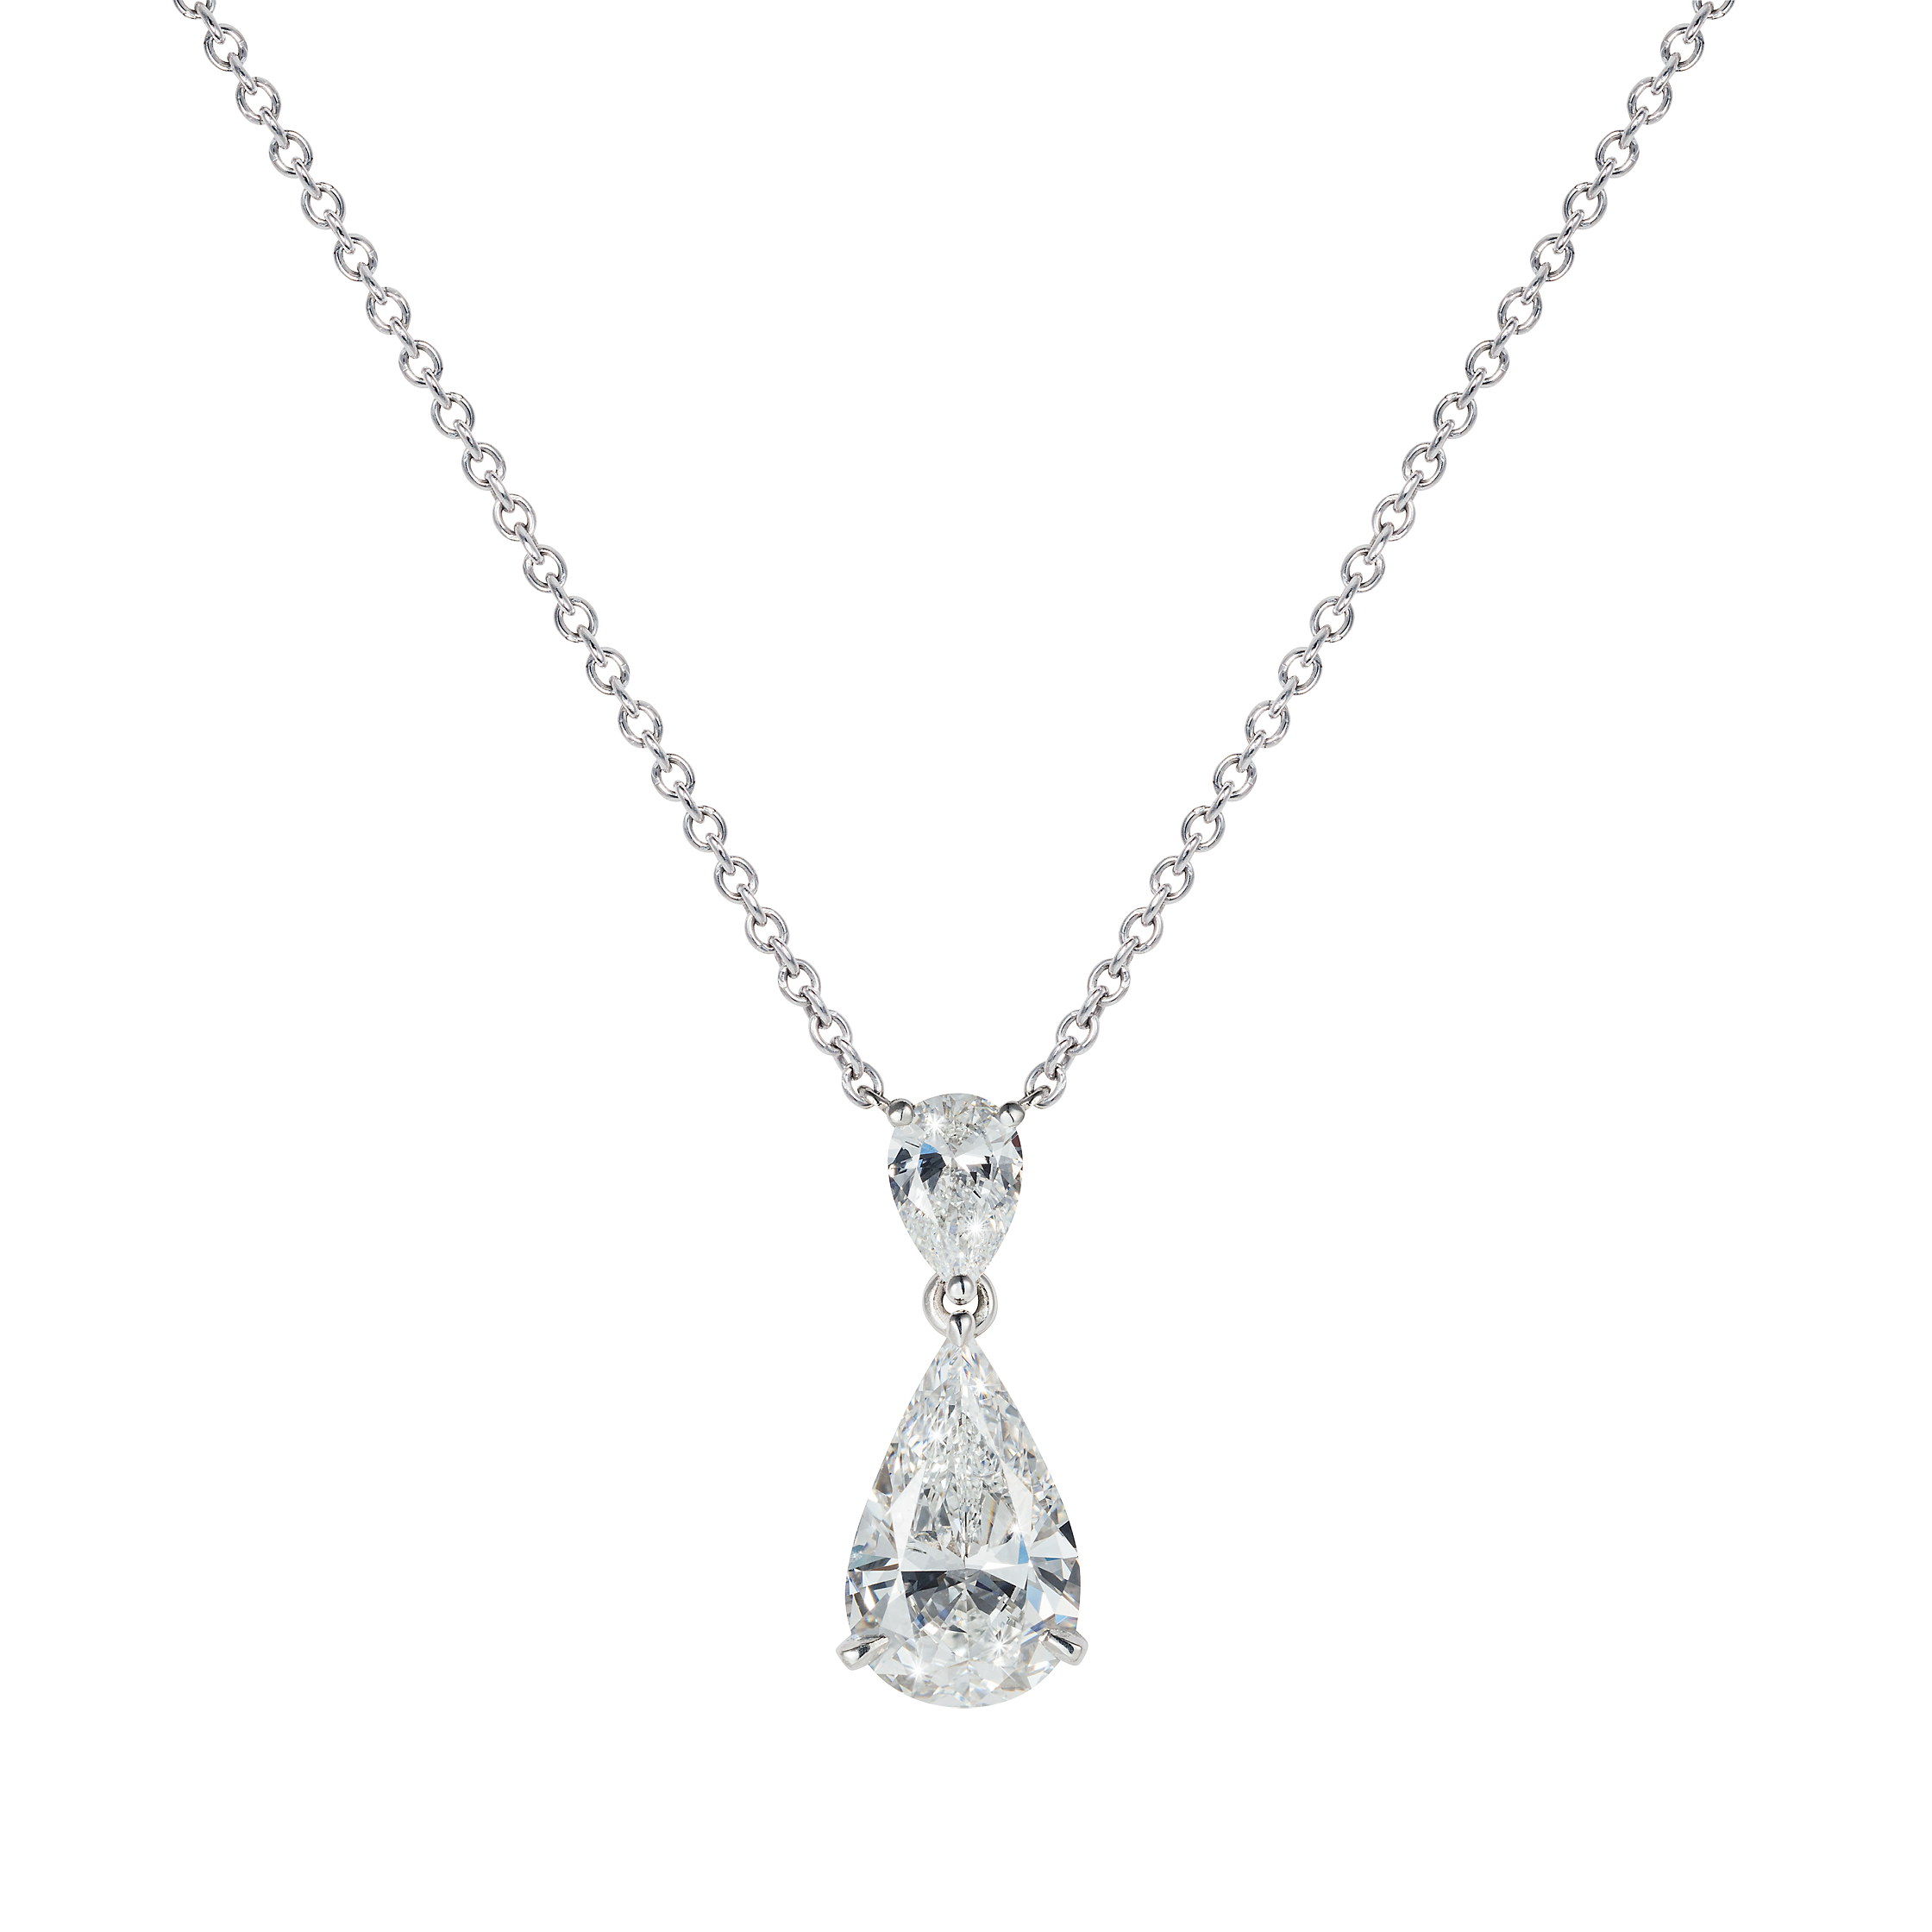 catalog pendant diamond necklace pear shaped wg